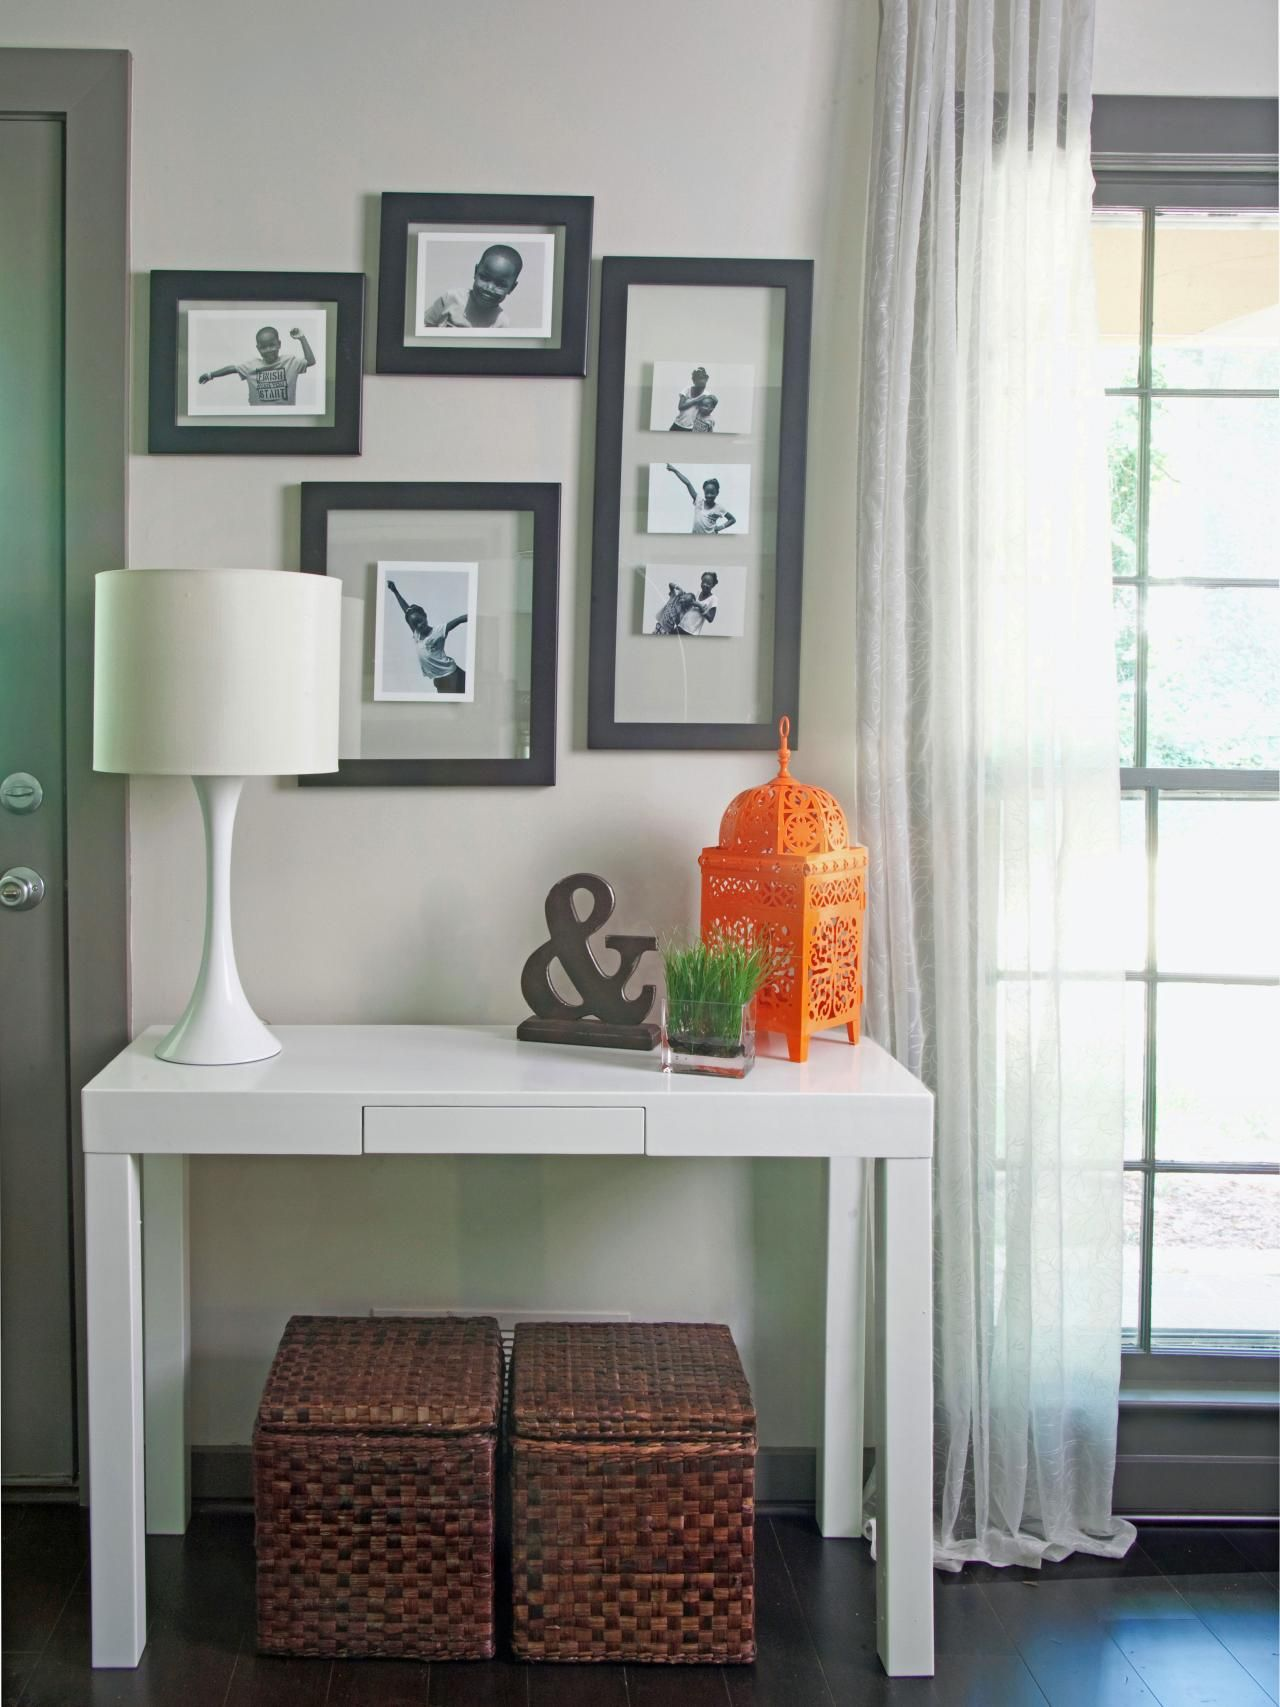 White Entryway Table   Brands Of White Mist May Develop Into A Wooden Entryway  Table Placing Vessels On The Surface. Prevent These White Markings Covering  ...